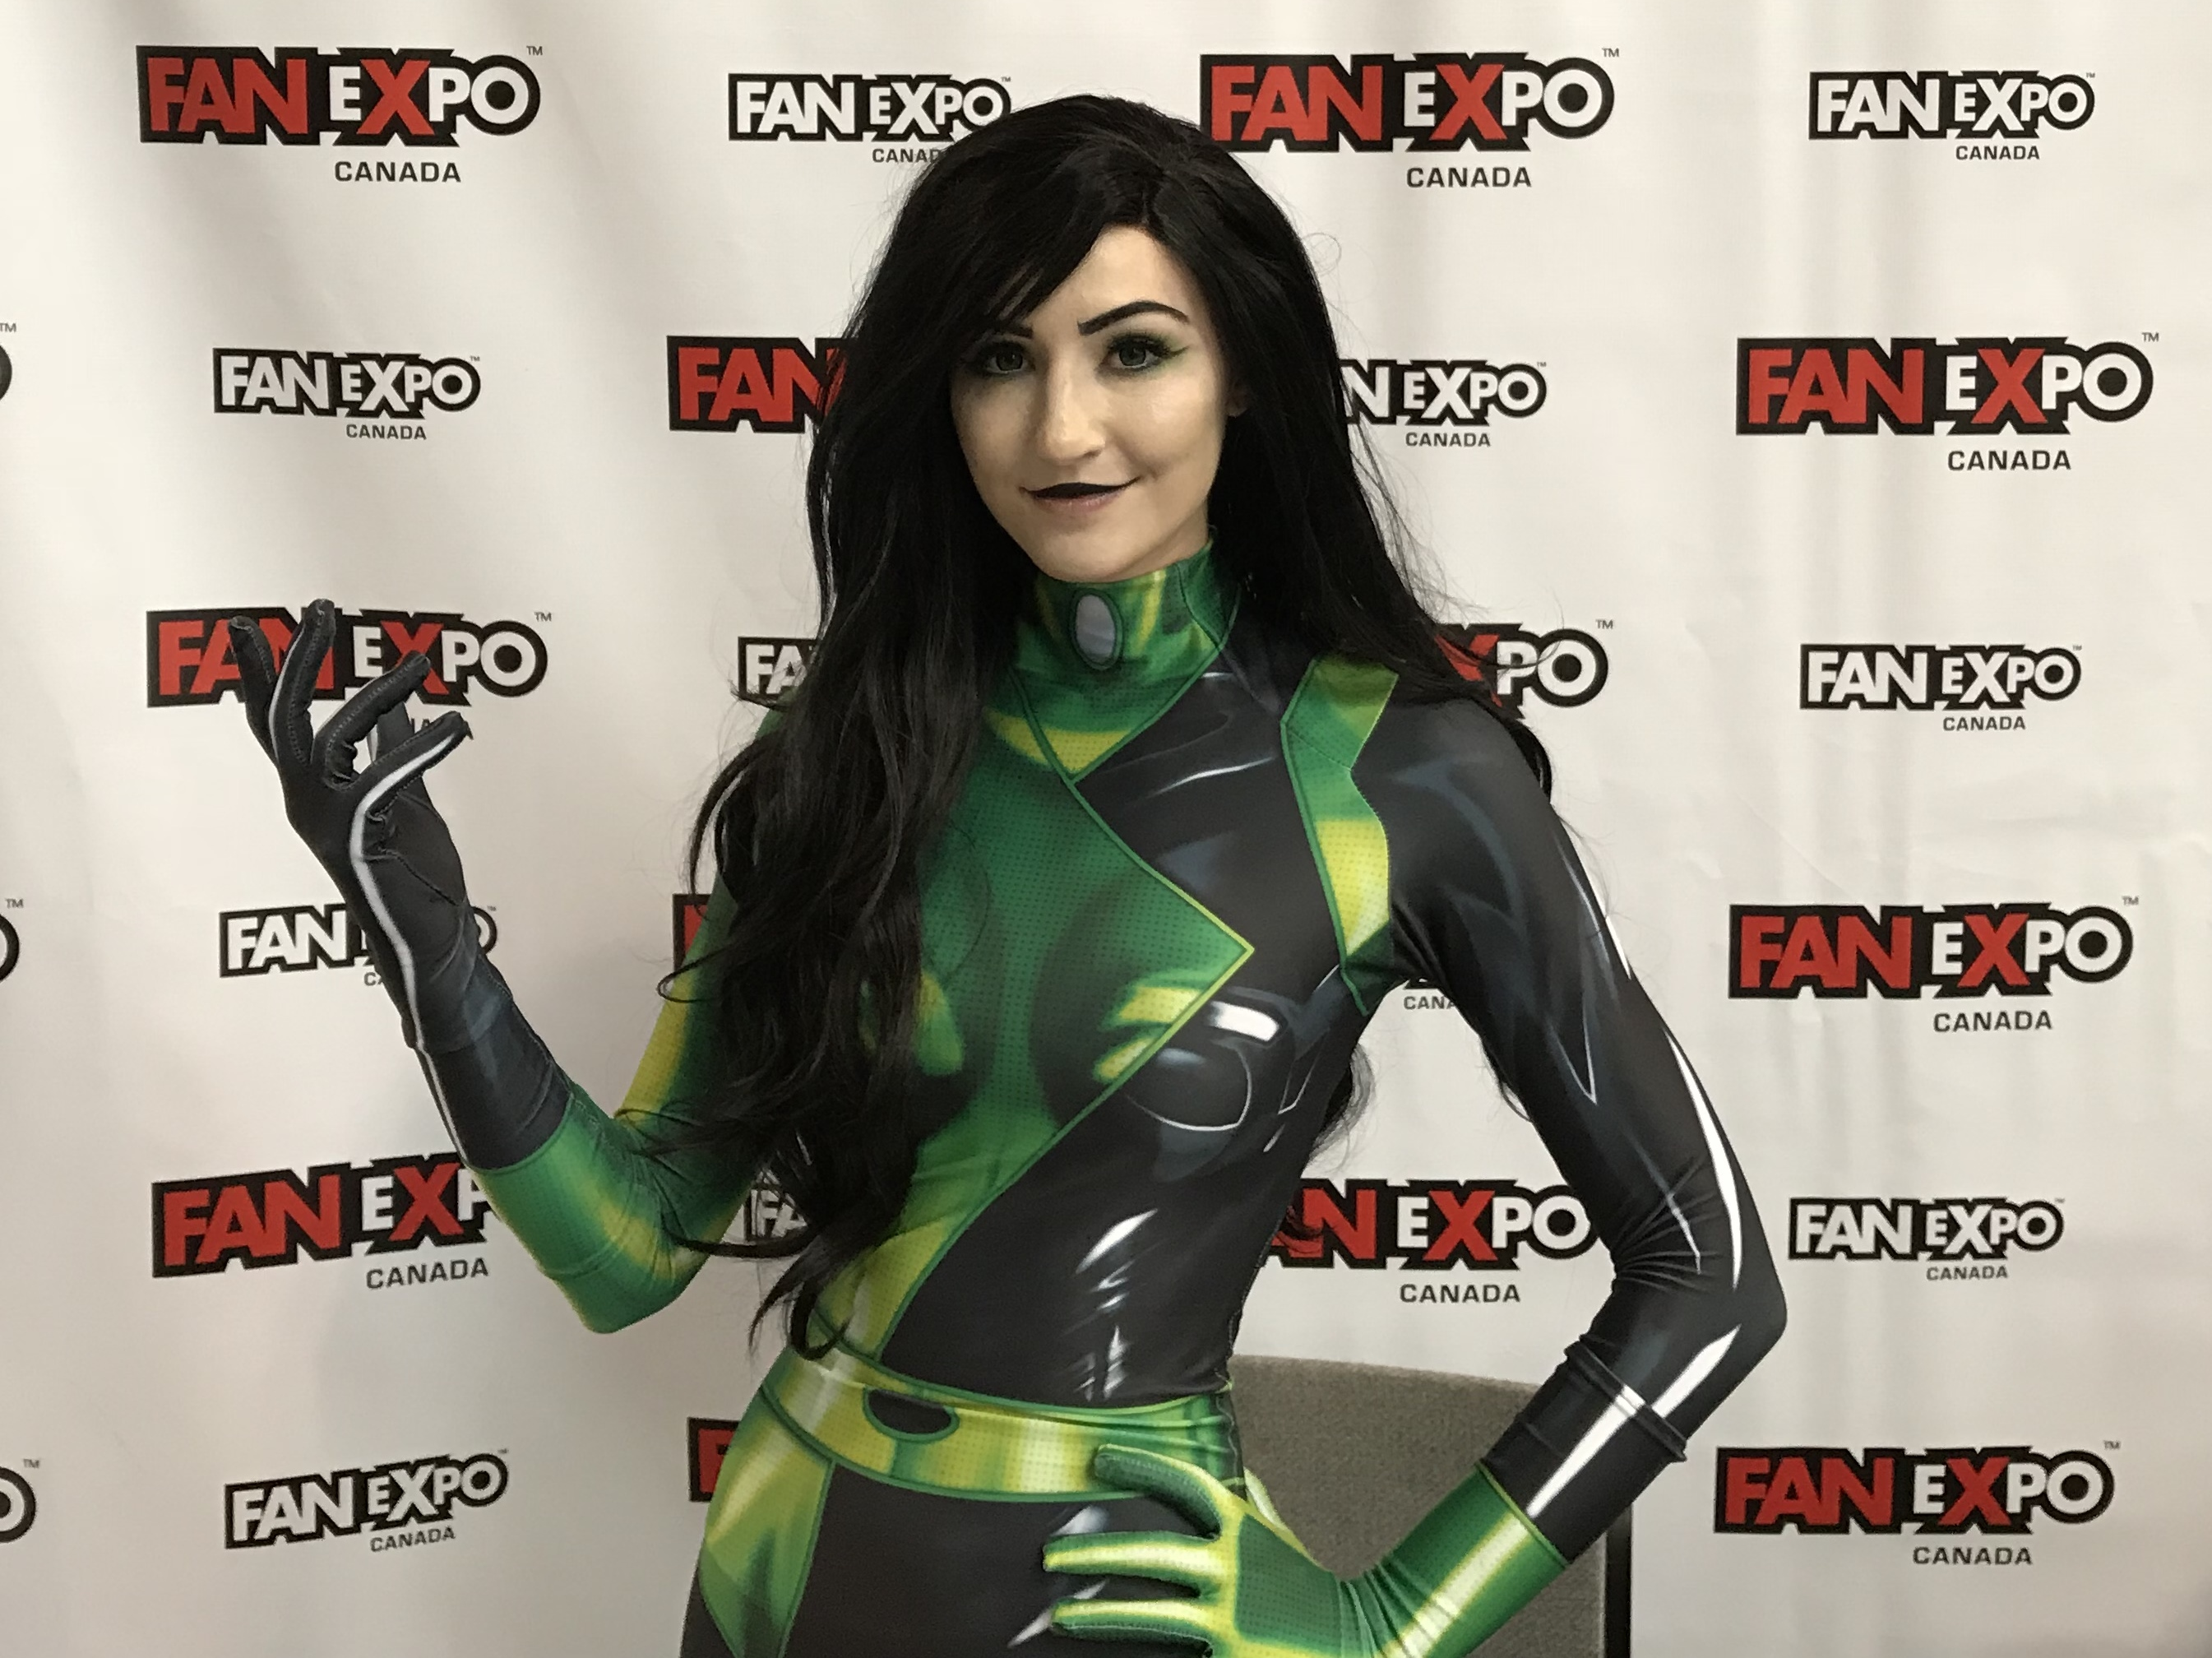 Luxlo Cosplay as Shego from Kim Possible at Fan Expo Canada 2018.